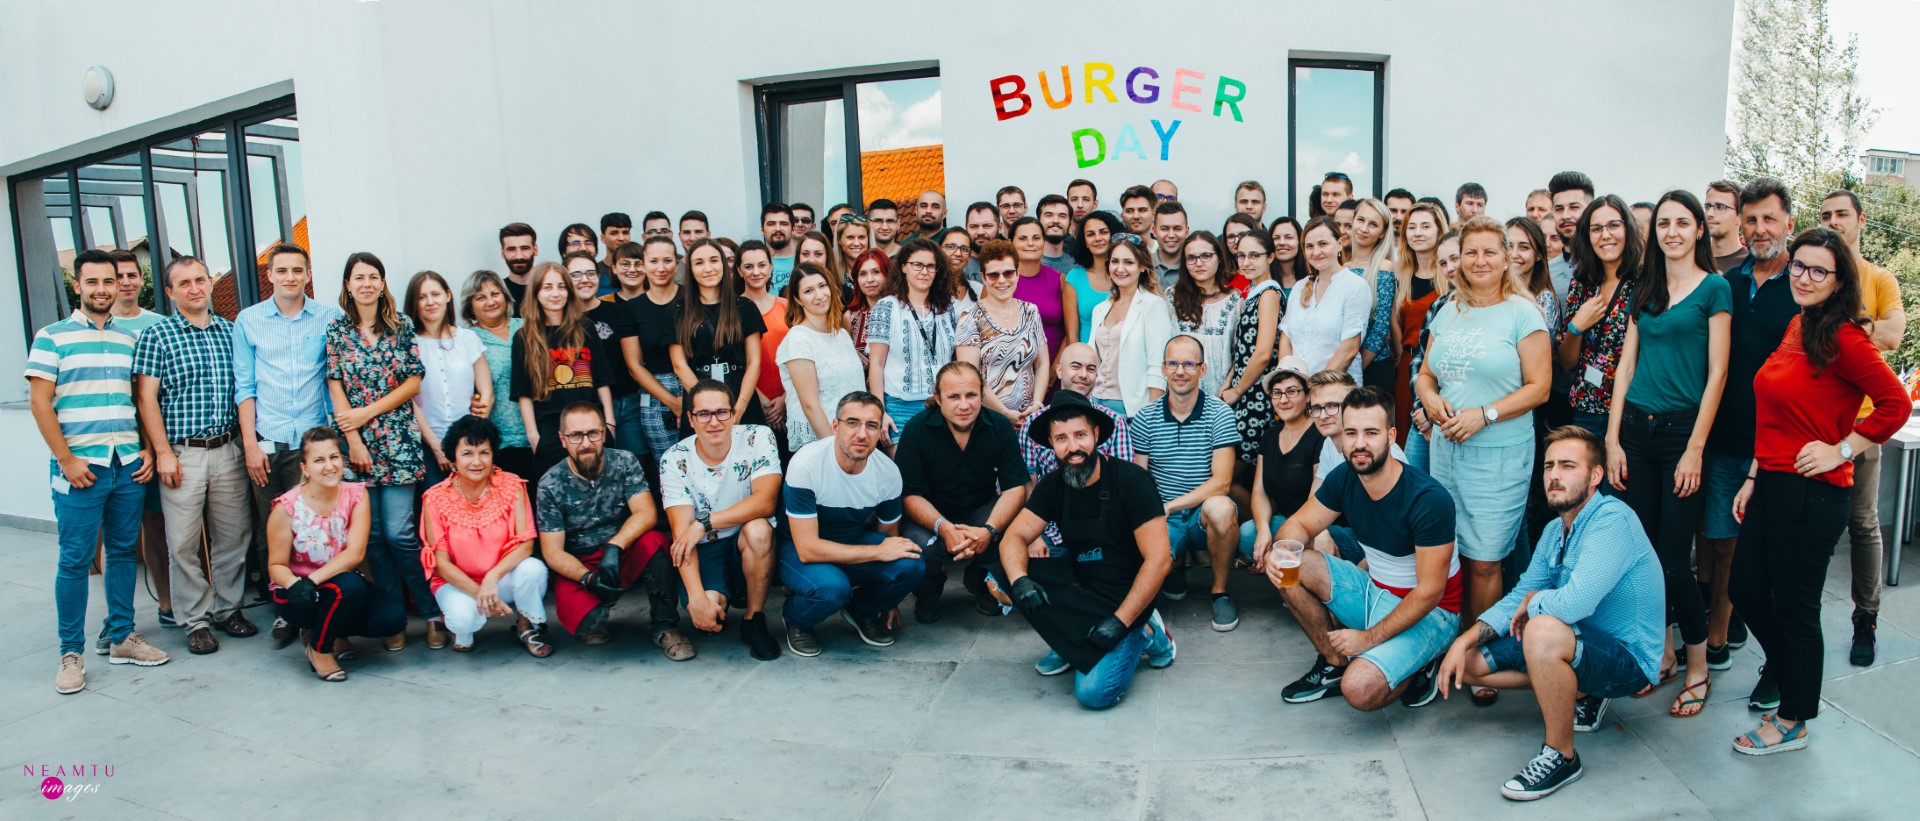 Burger Day reloaded 2019